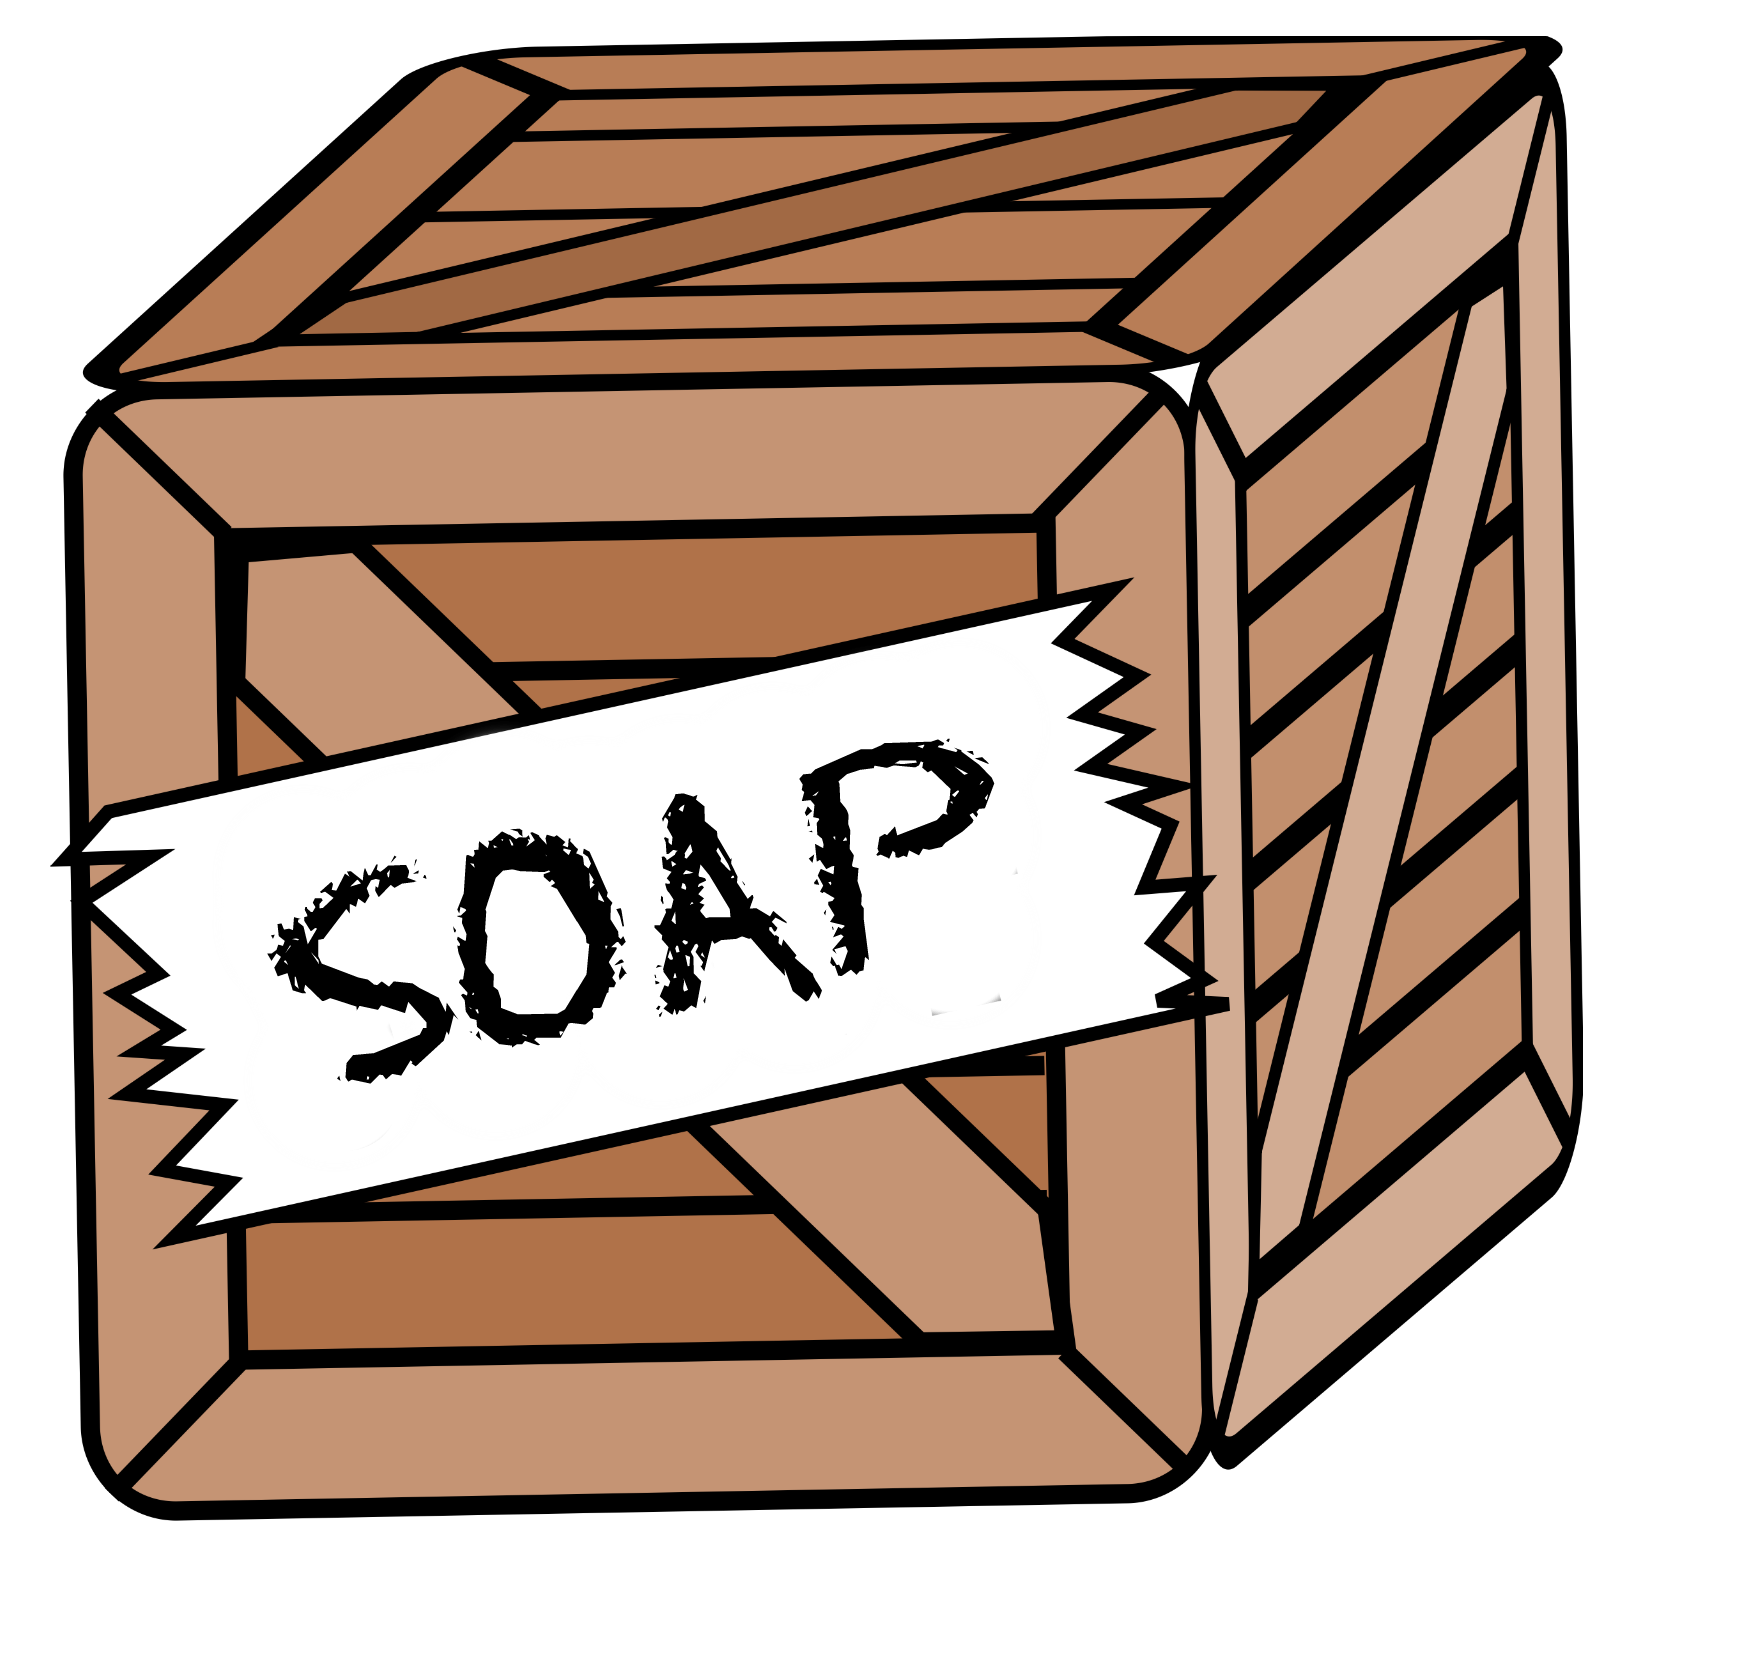 Soapbox car clipart image library library PNG Soap Box Transparent Soap Box.PNG Images. | PlusPNG image library library